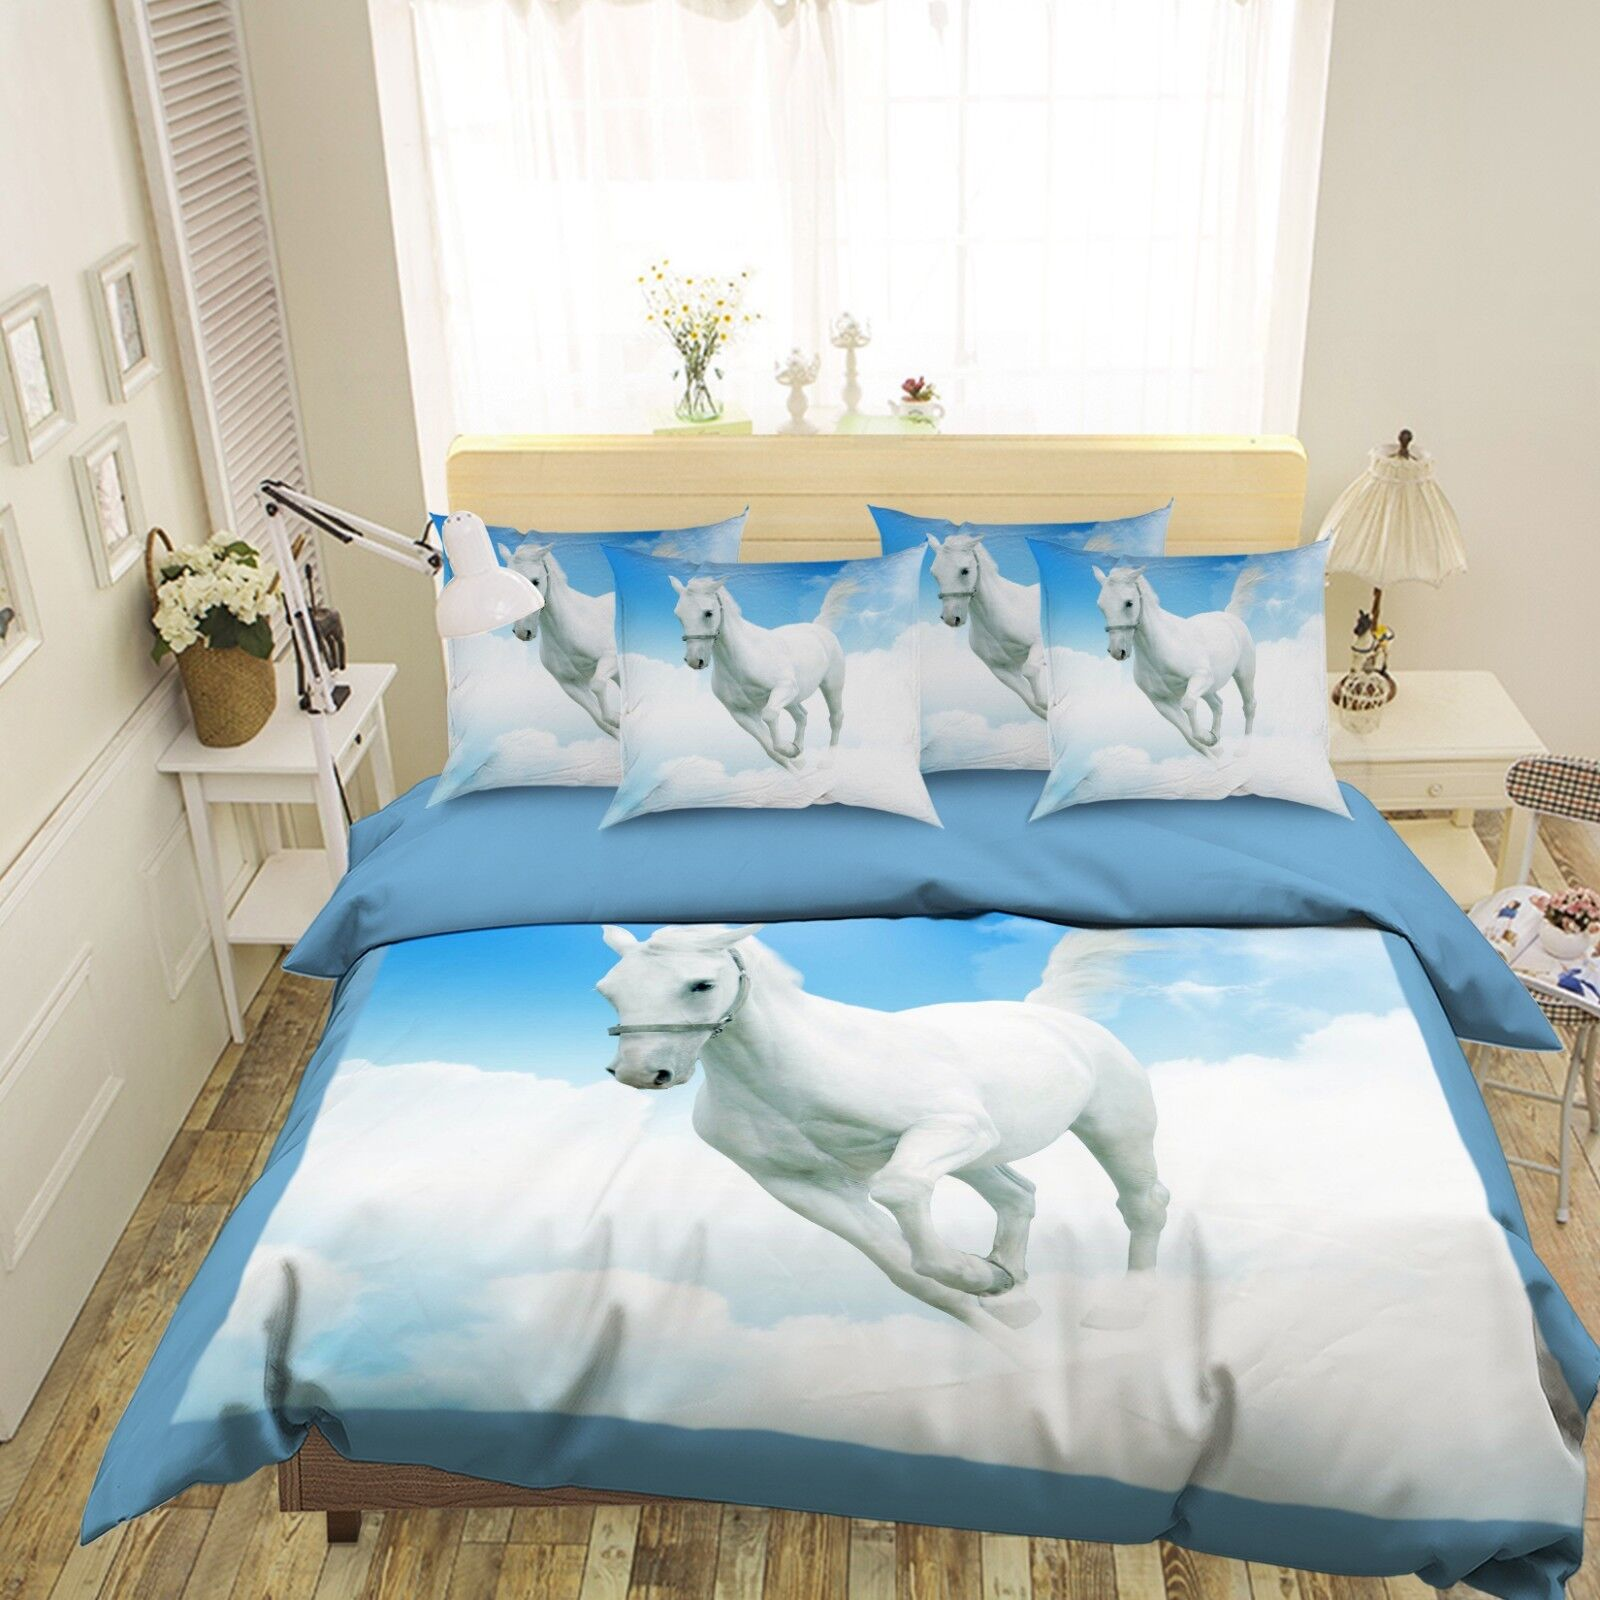 3D Clouds Horse 687 Bed Pillowcases Quilt Duvet Cover Set Single King UK Summer